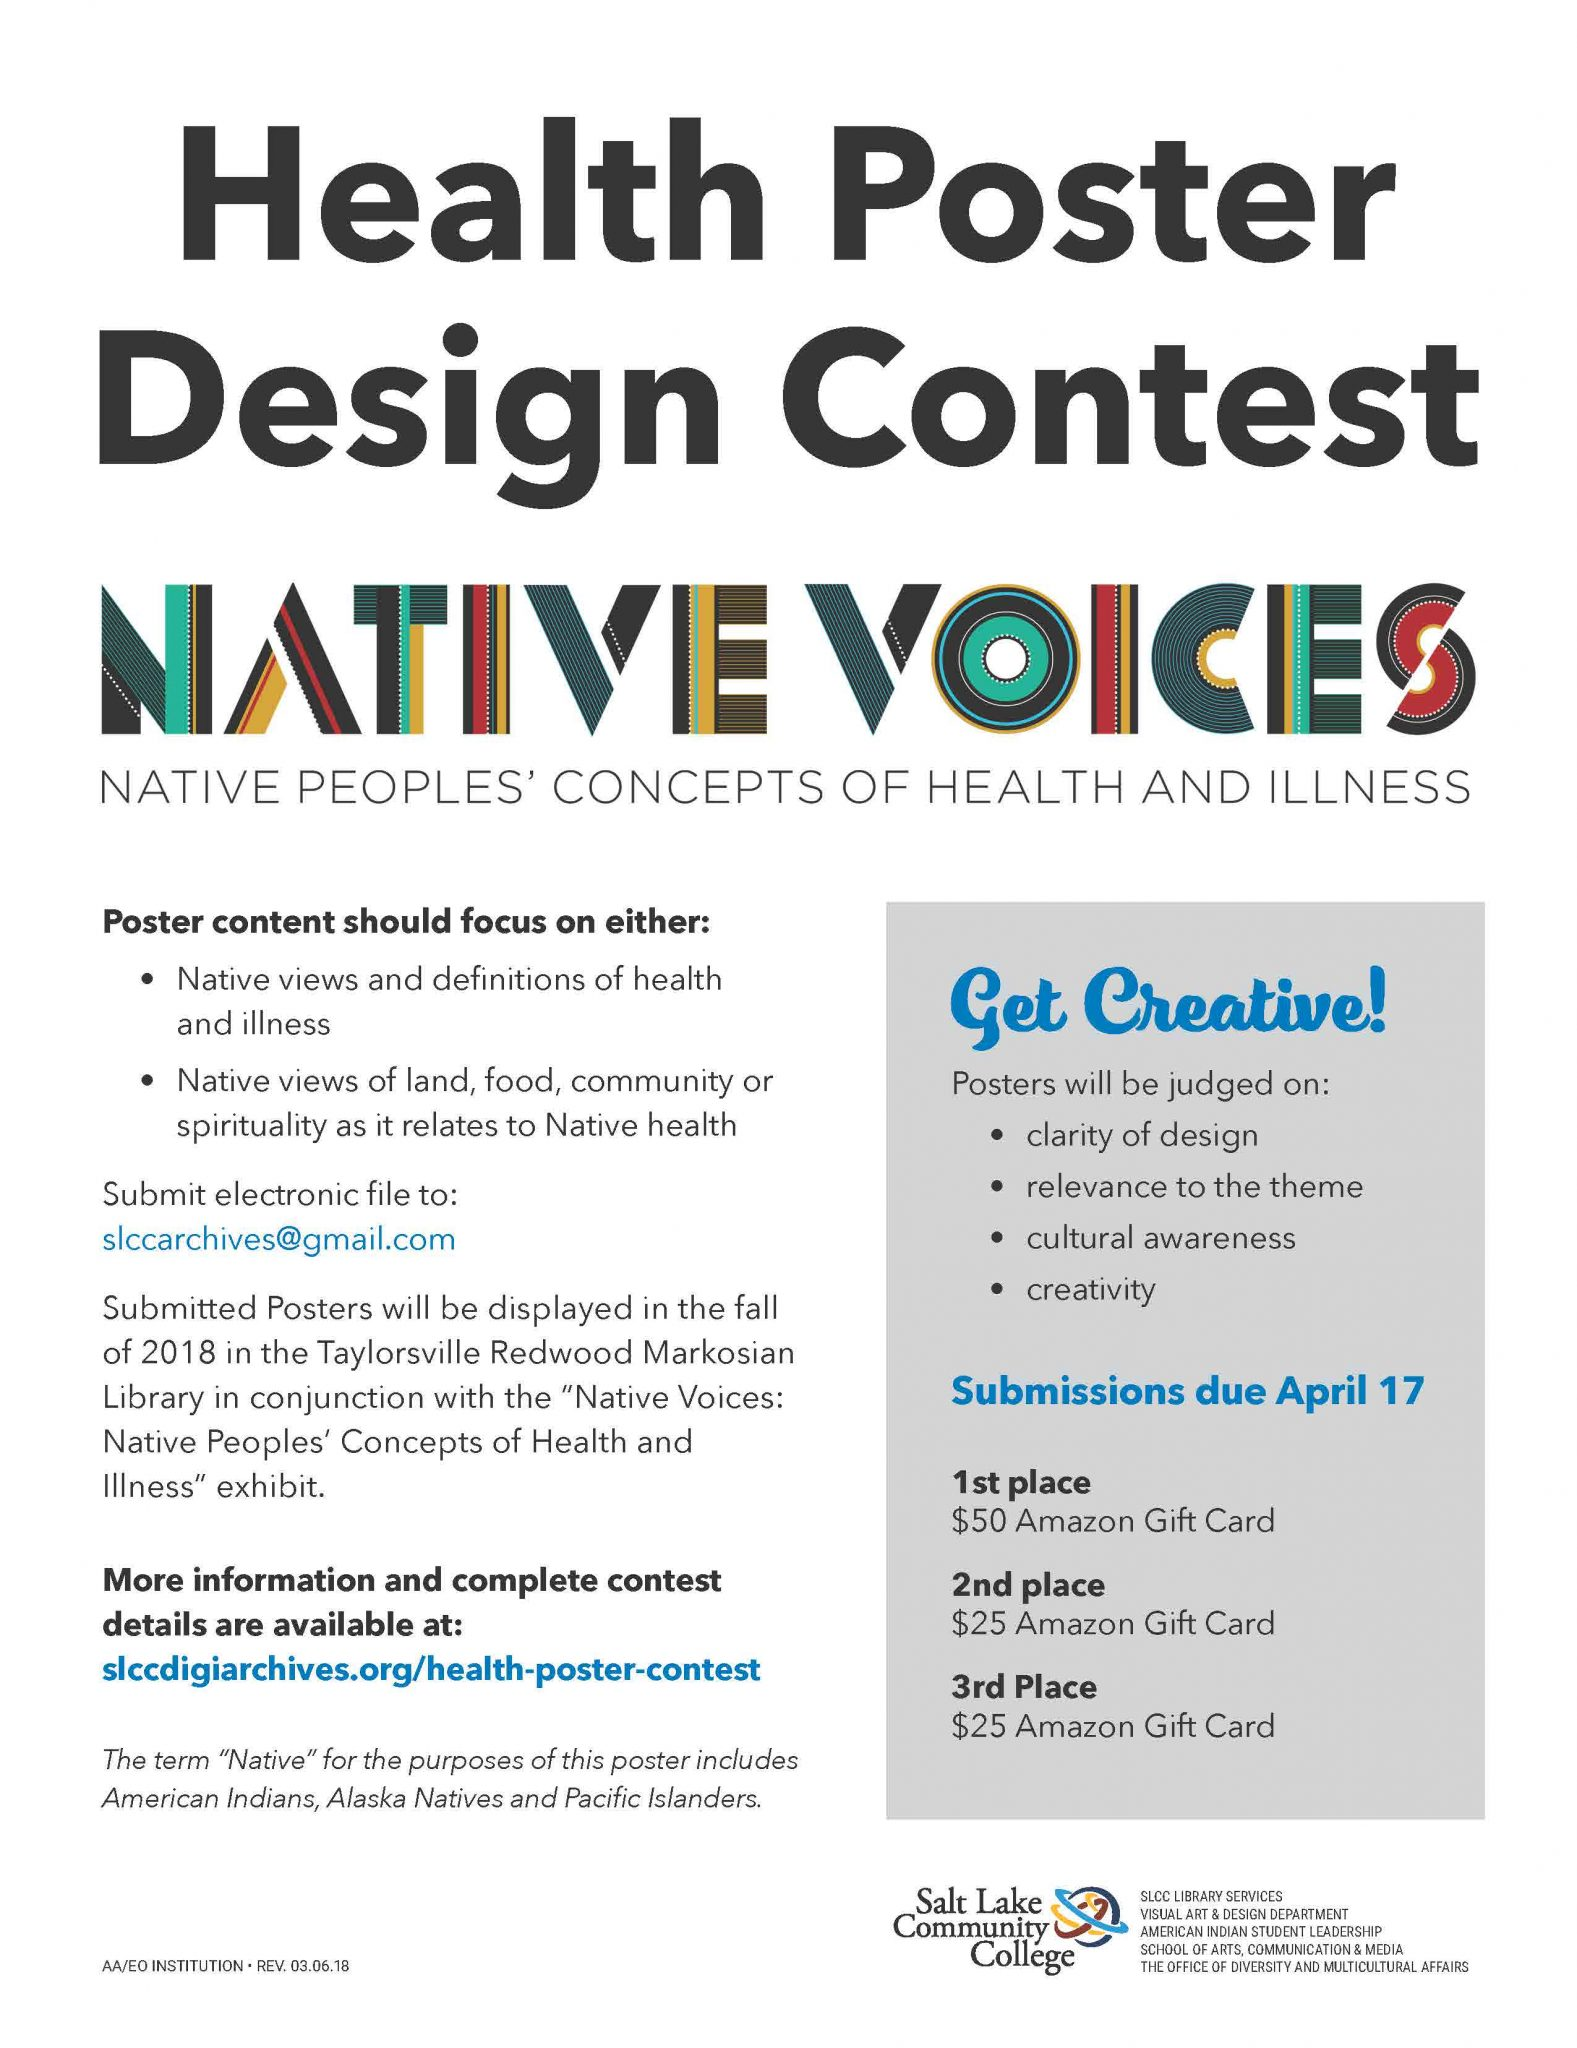 During March And April SLCC Library Services Is Runing A Health Poster  Design Contest Related To Native Peopleu0027s Concepts Of Health And Illness.